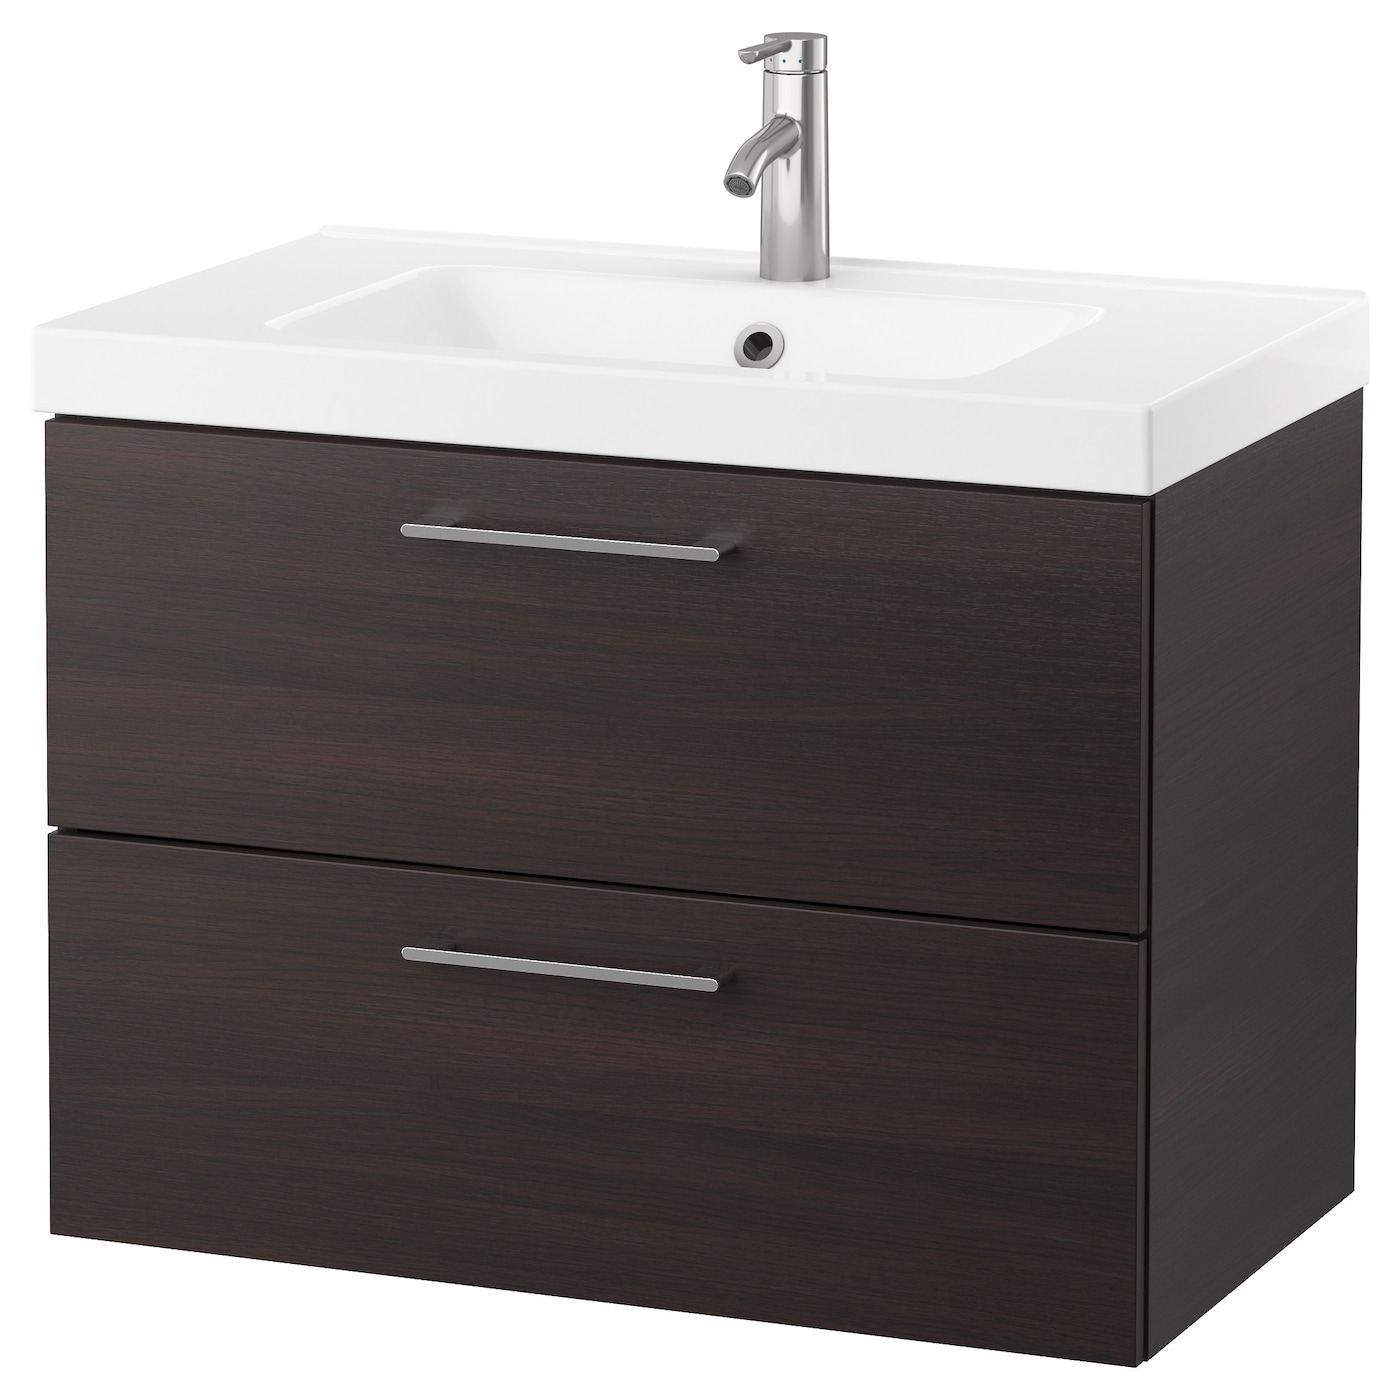 Bathroom vanity units ikea ireland dublin for Ikea bath vanity